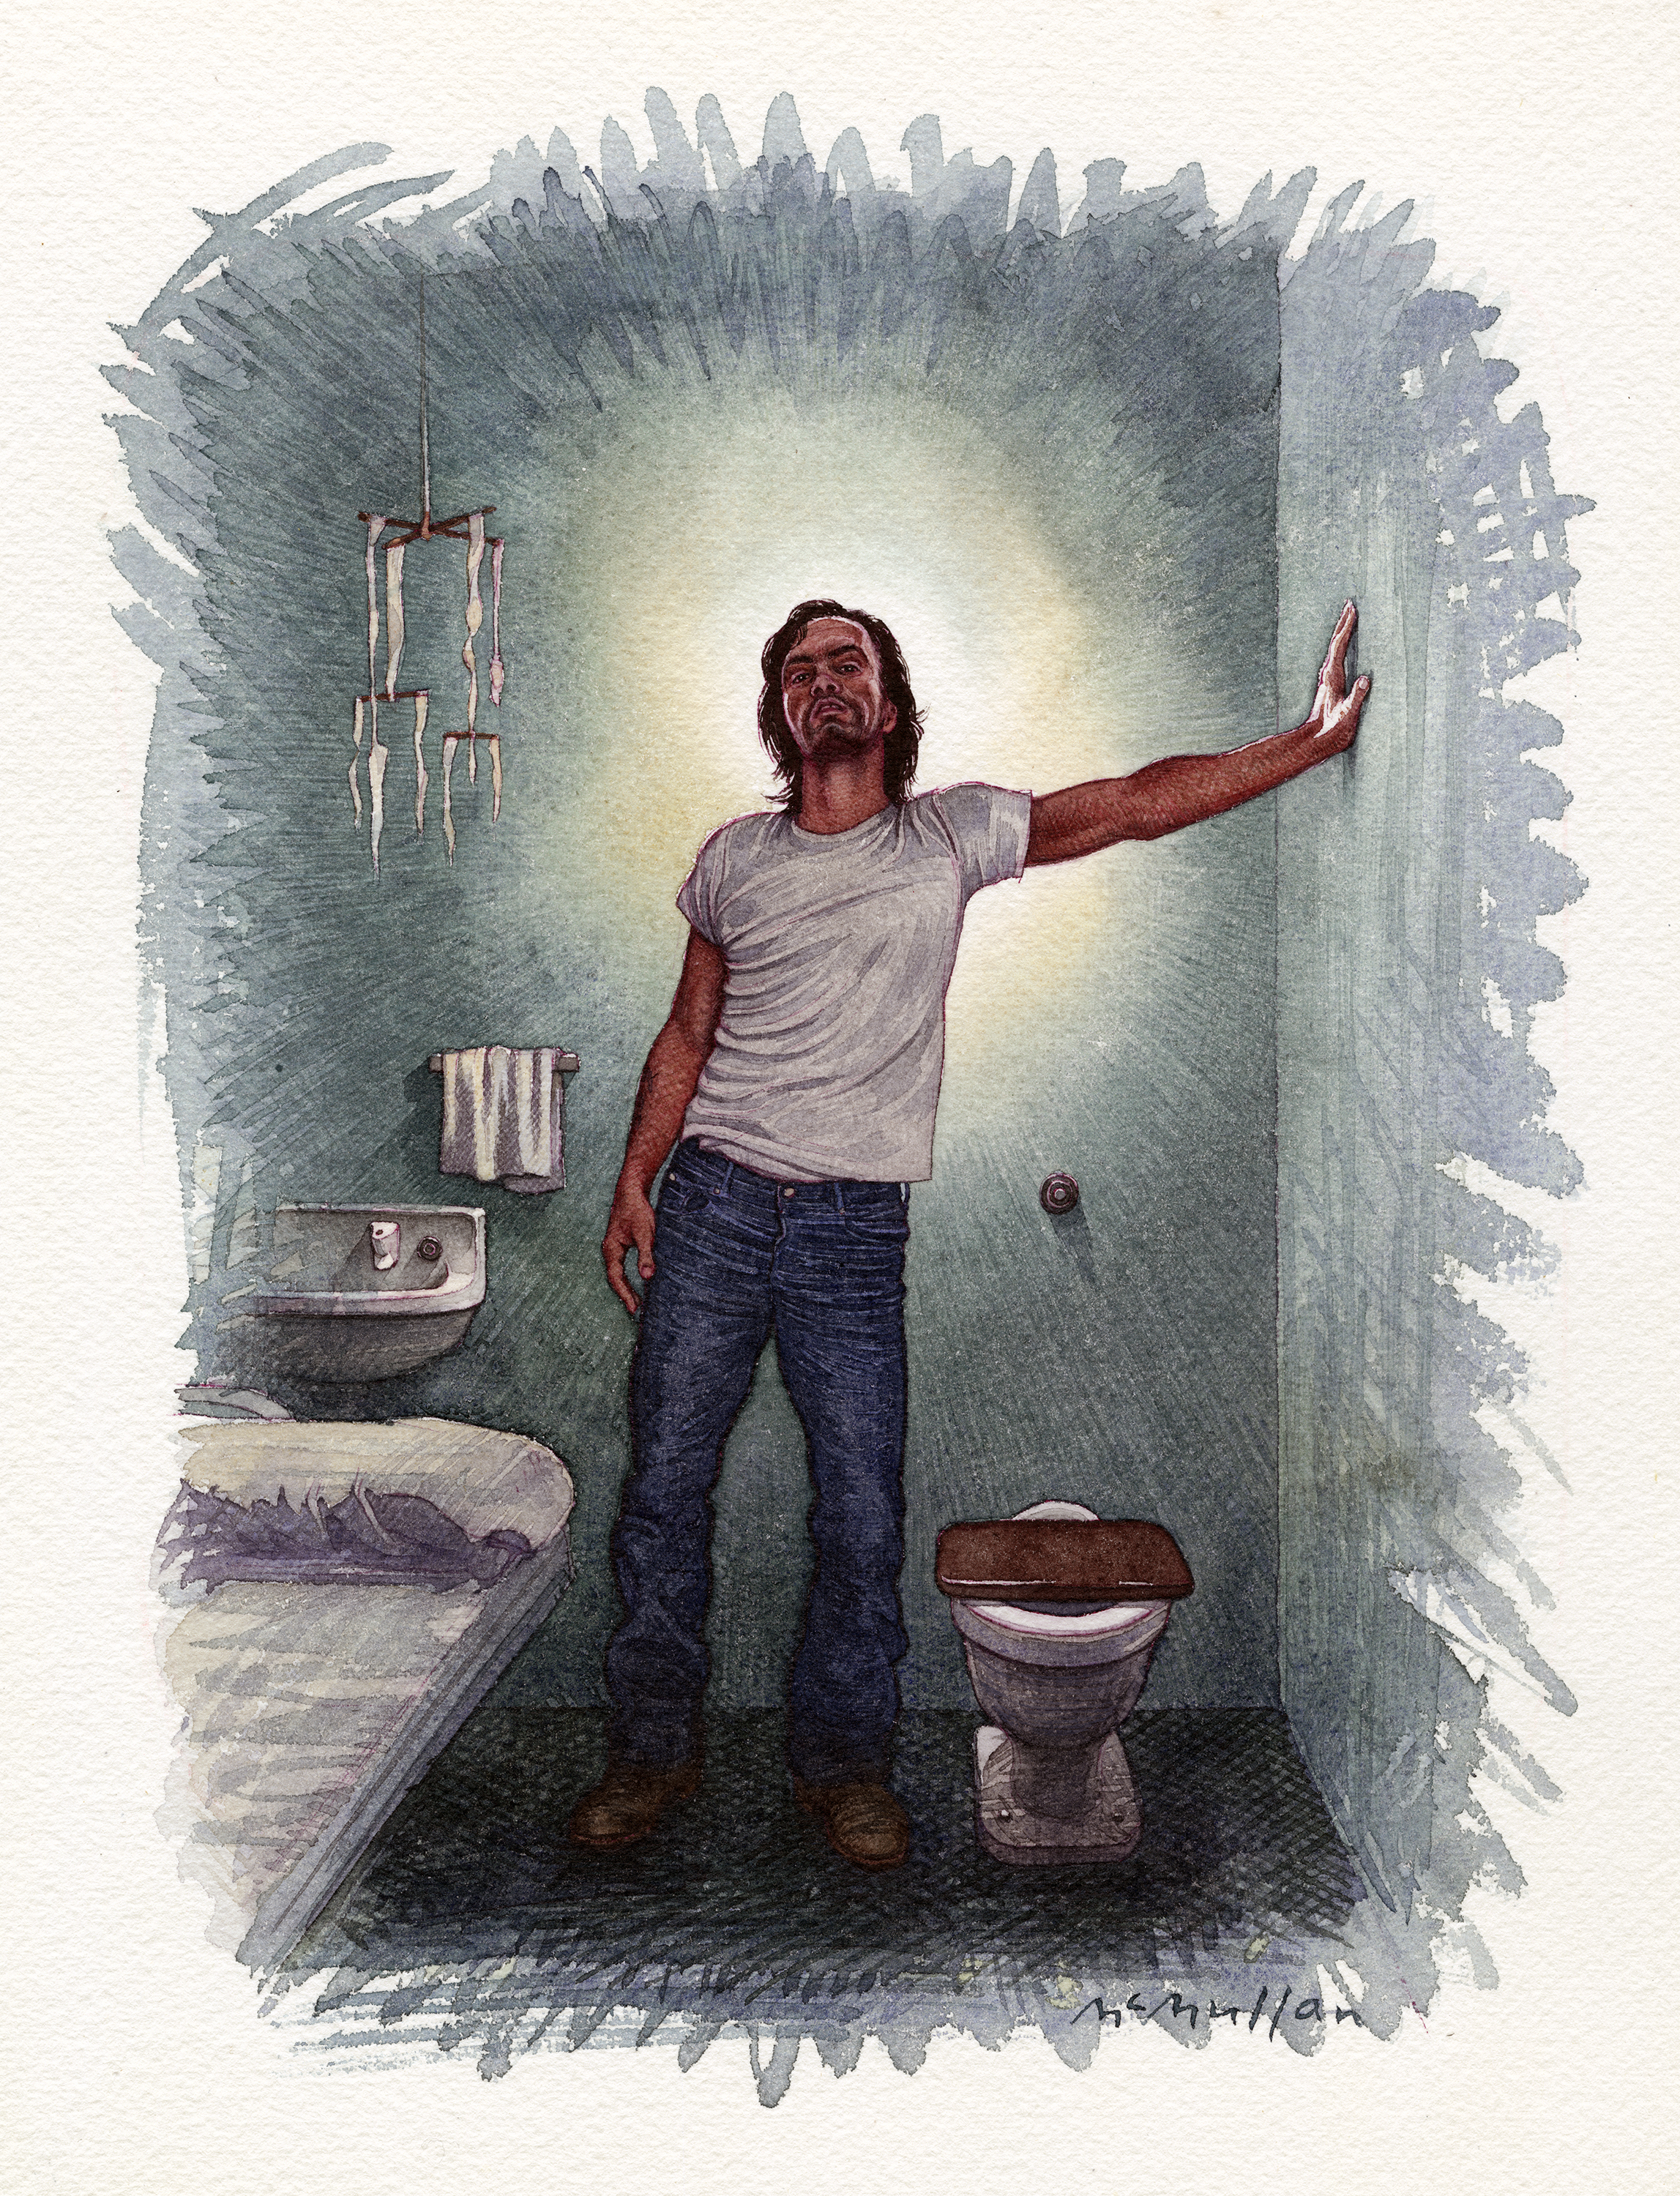 Watercolor illustration of Charles Manson in a prison cell, wearing a white t-shirt and jeans, with his hand against the wall.